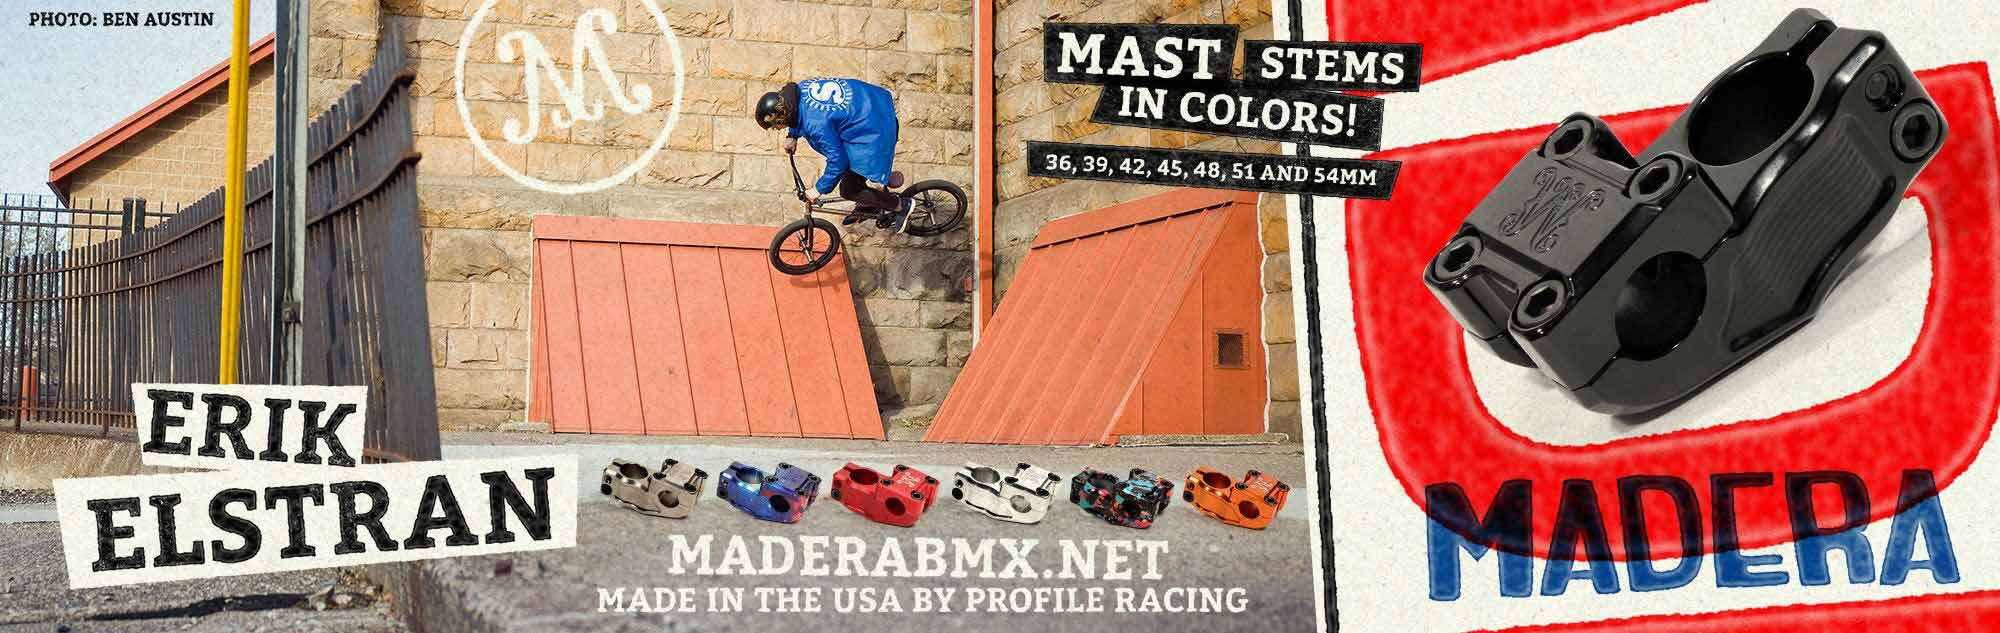 Madera Mast Stem available at Albe's BMX Bike Shop Online